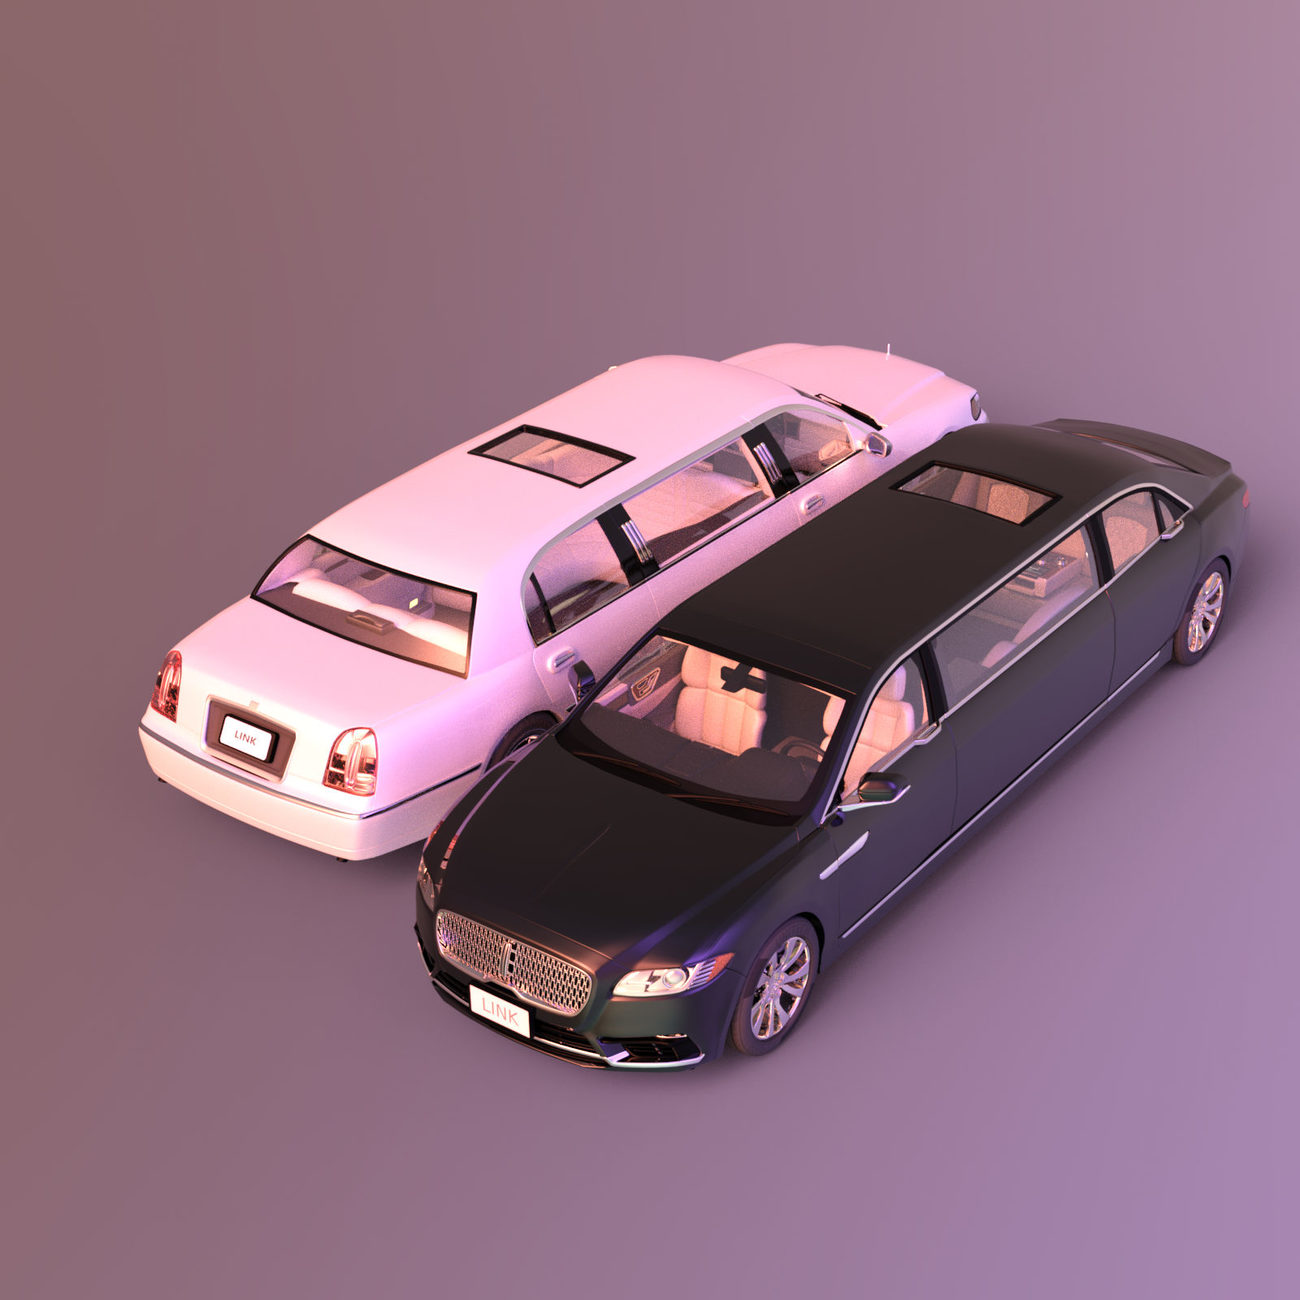 Two limousines